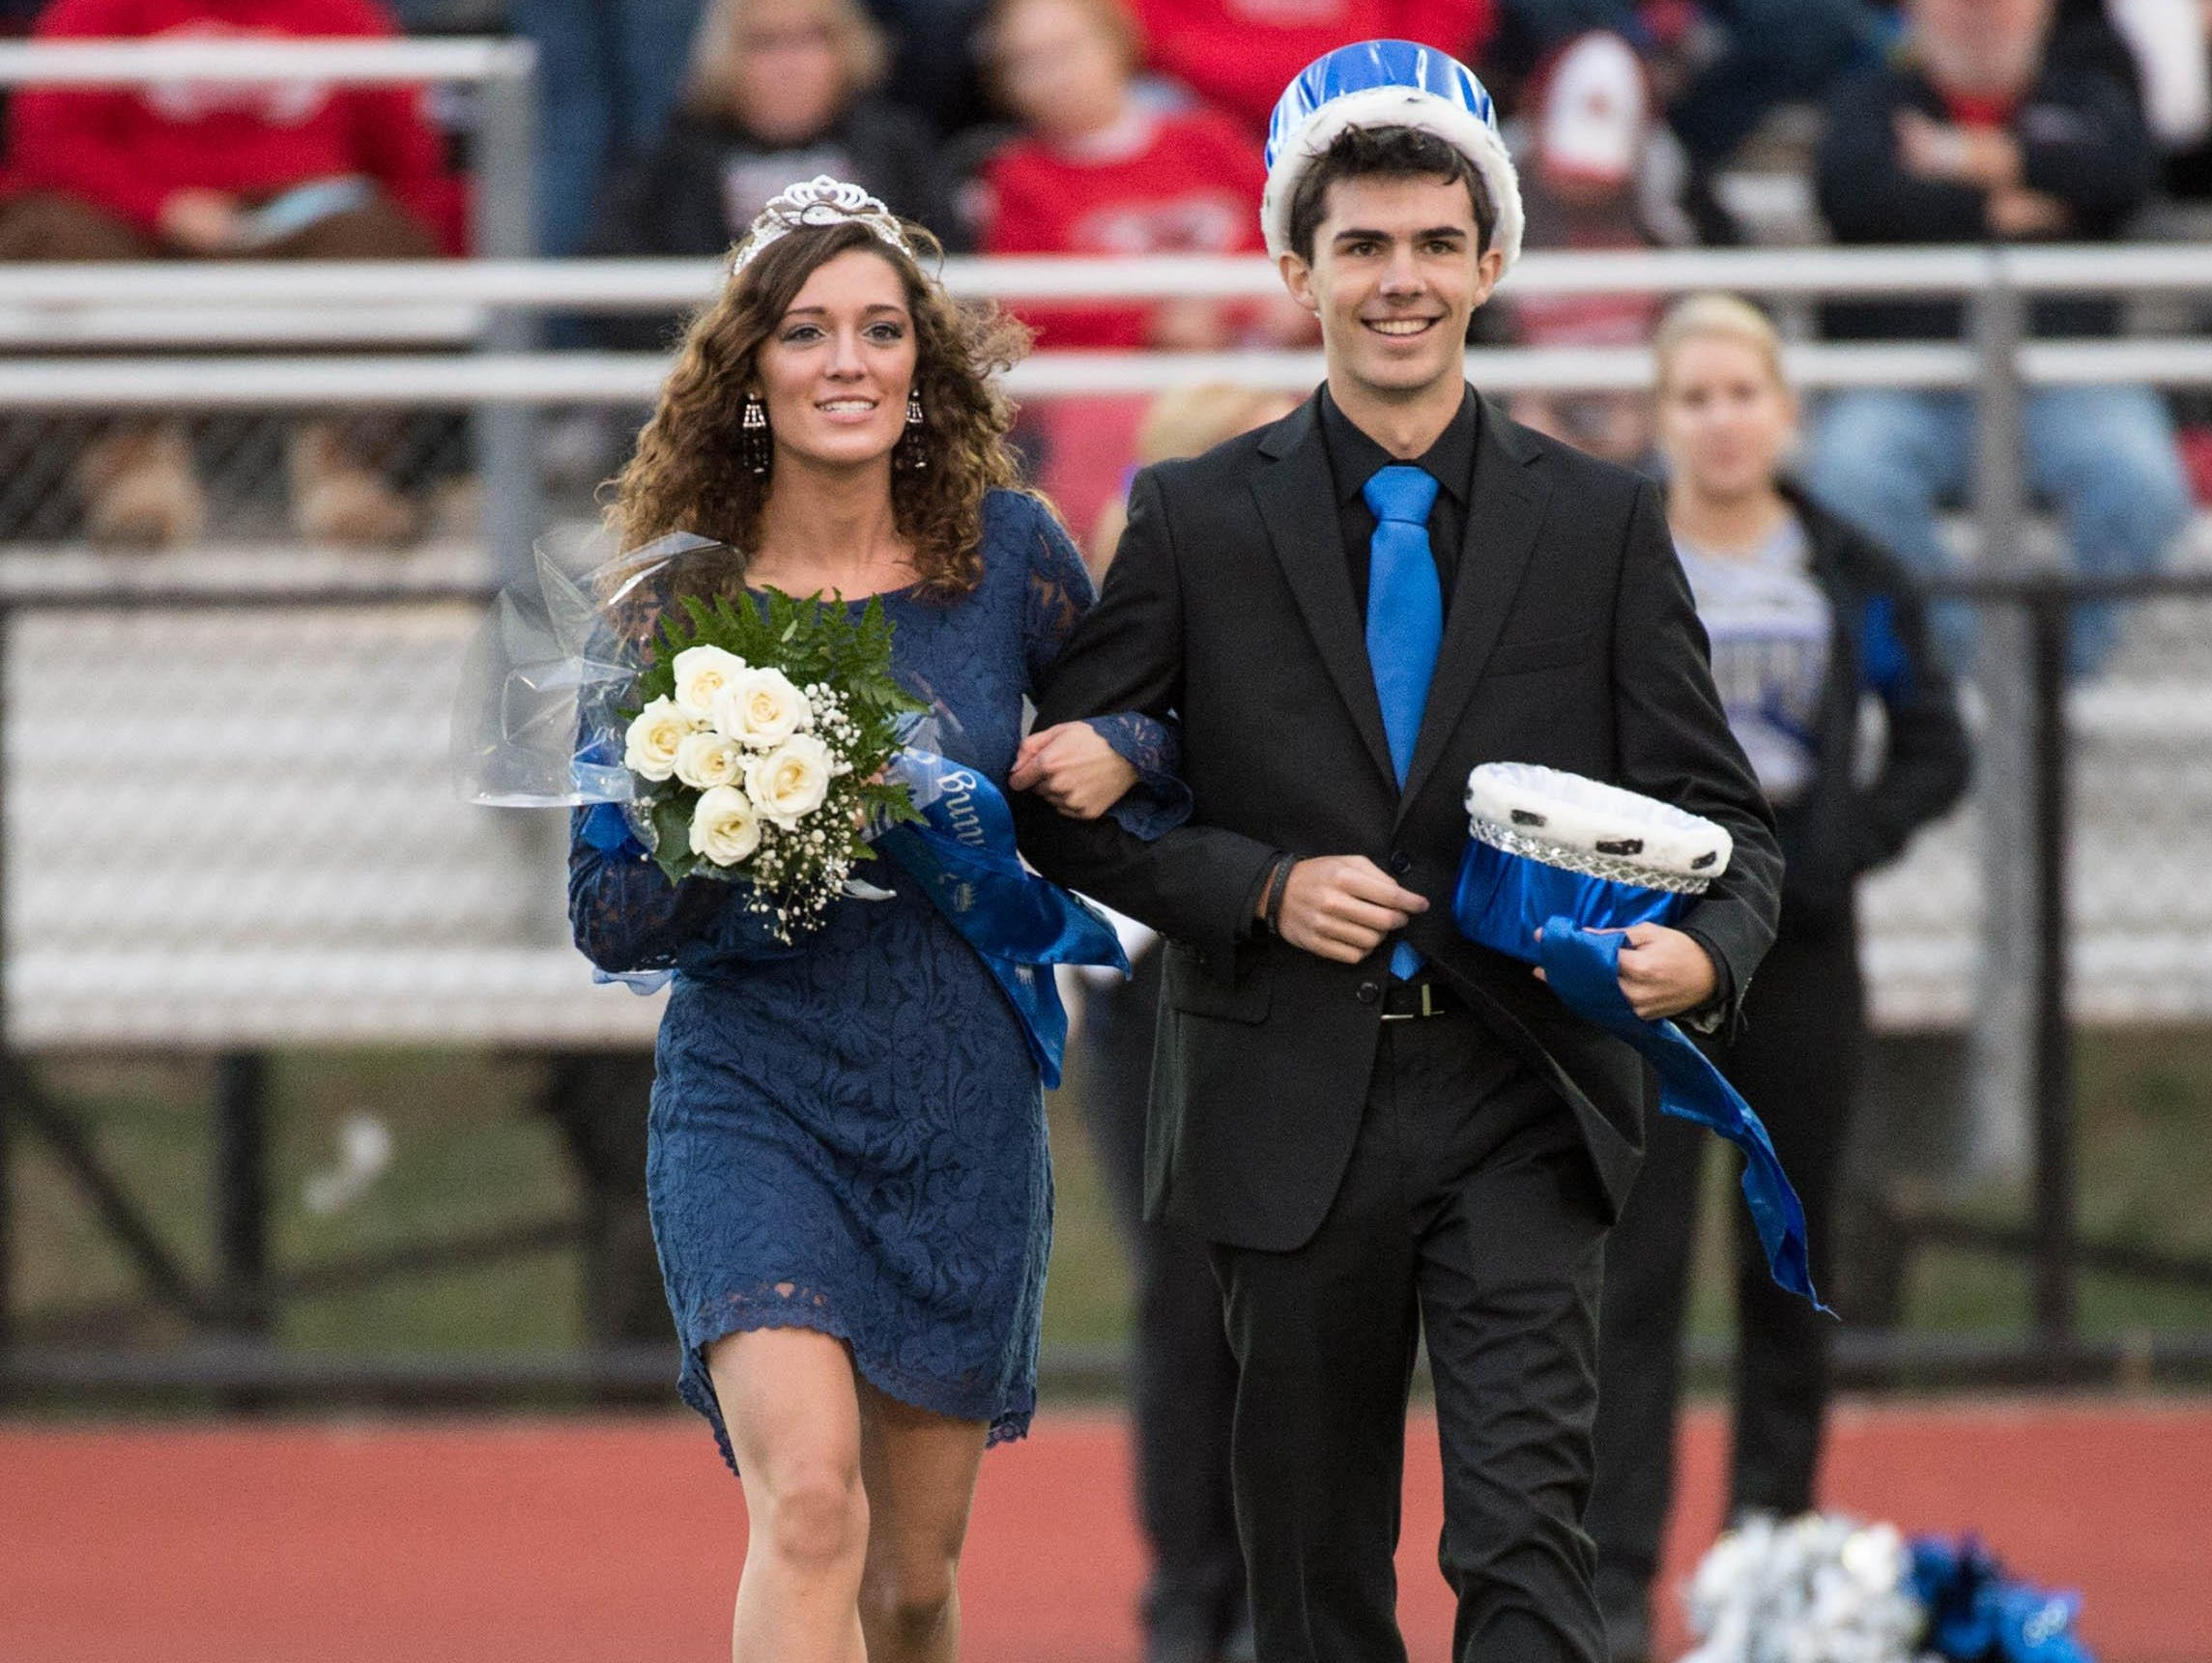 Last year home comming King and Queen.